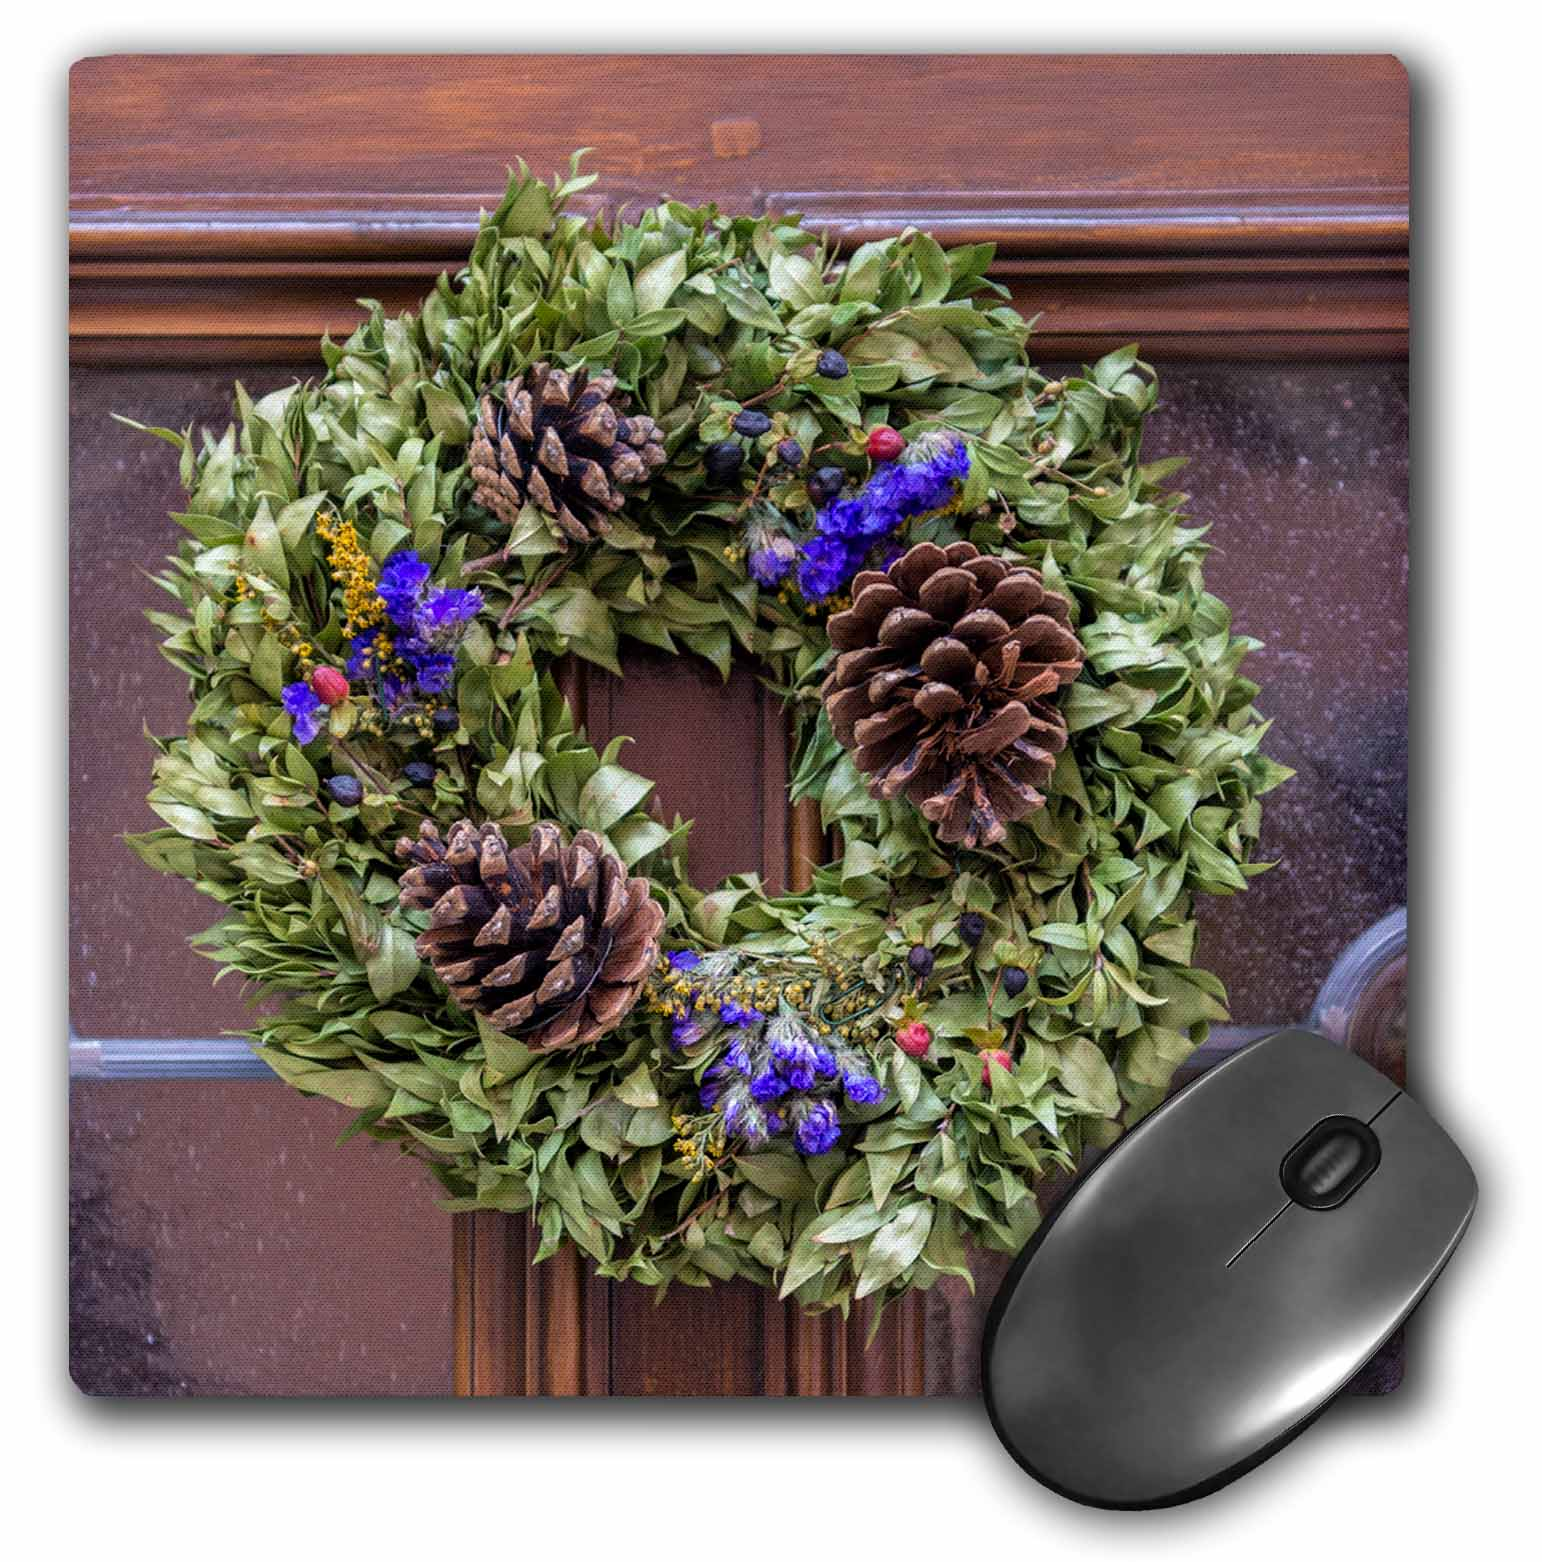 3dRose Decorative holiday wreath on front door, Rothenburg, Germany, Mouse Pad, 8 by 8 inches